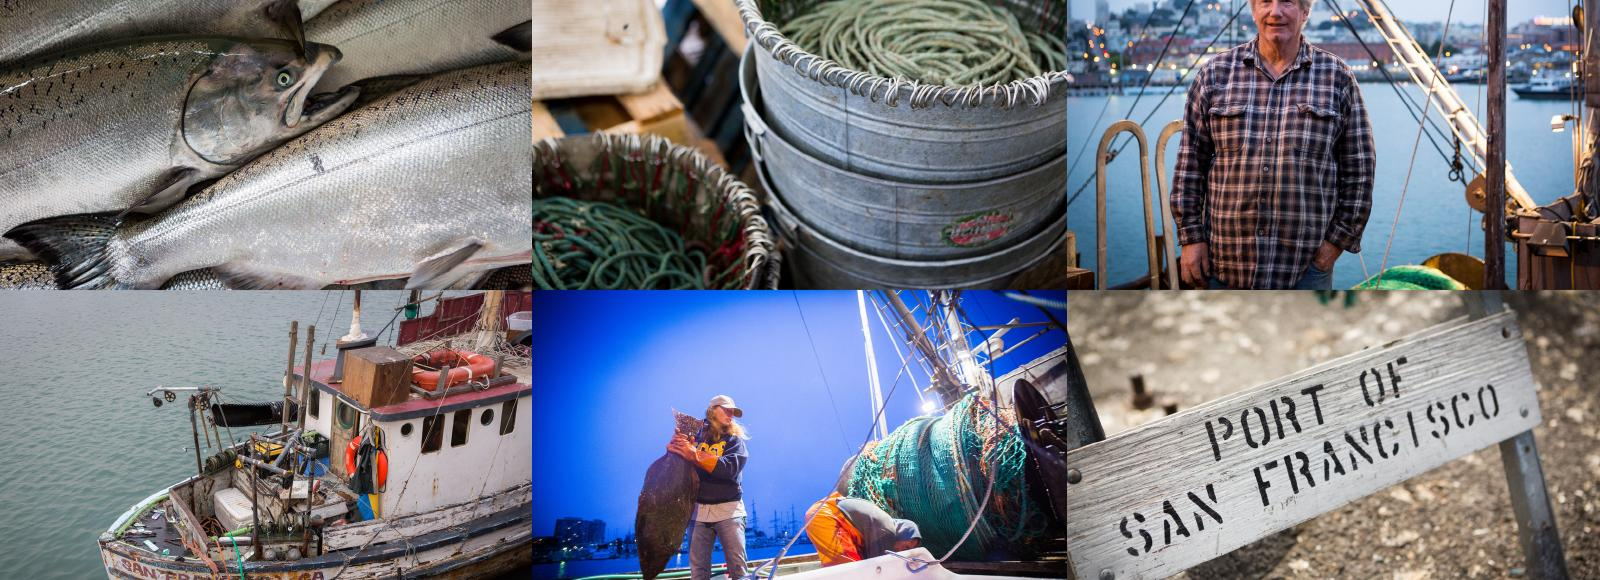 grid of fishing photos - fishermen, ropes, fish